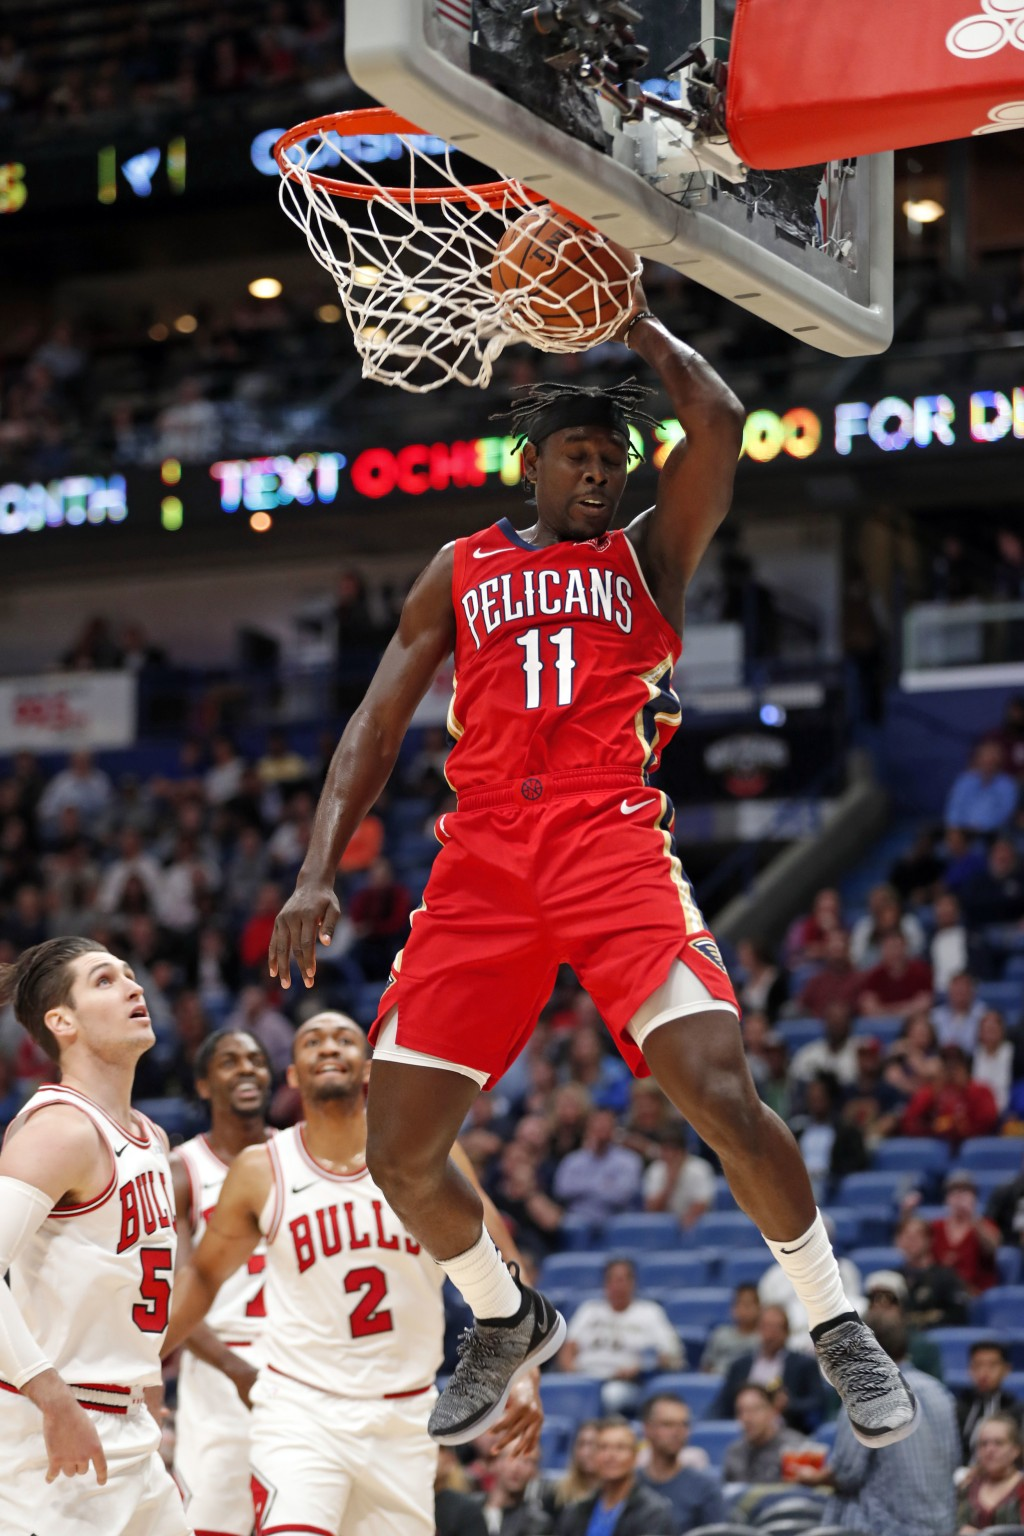 New Orleans Pelicans guard Jrue Holiday (11) dunks over Chicago Bulls forwards Bobby Portis (5) and Jabari Parker (2) during the first half of an NBA